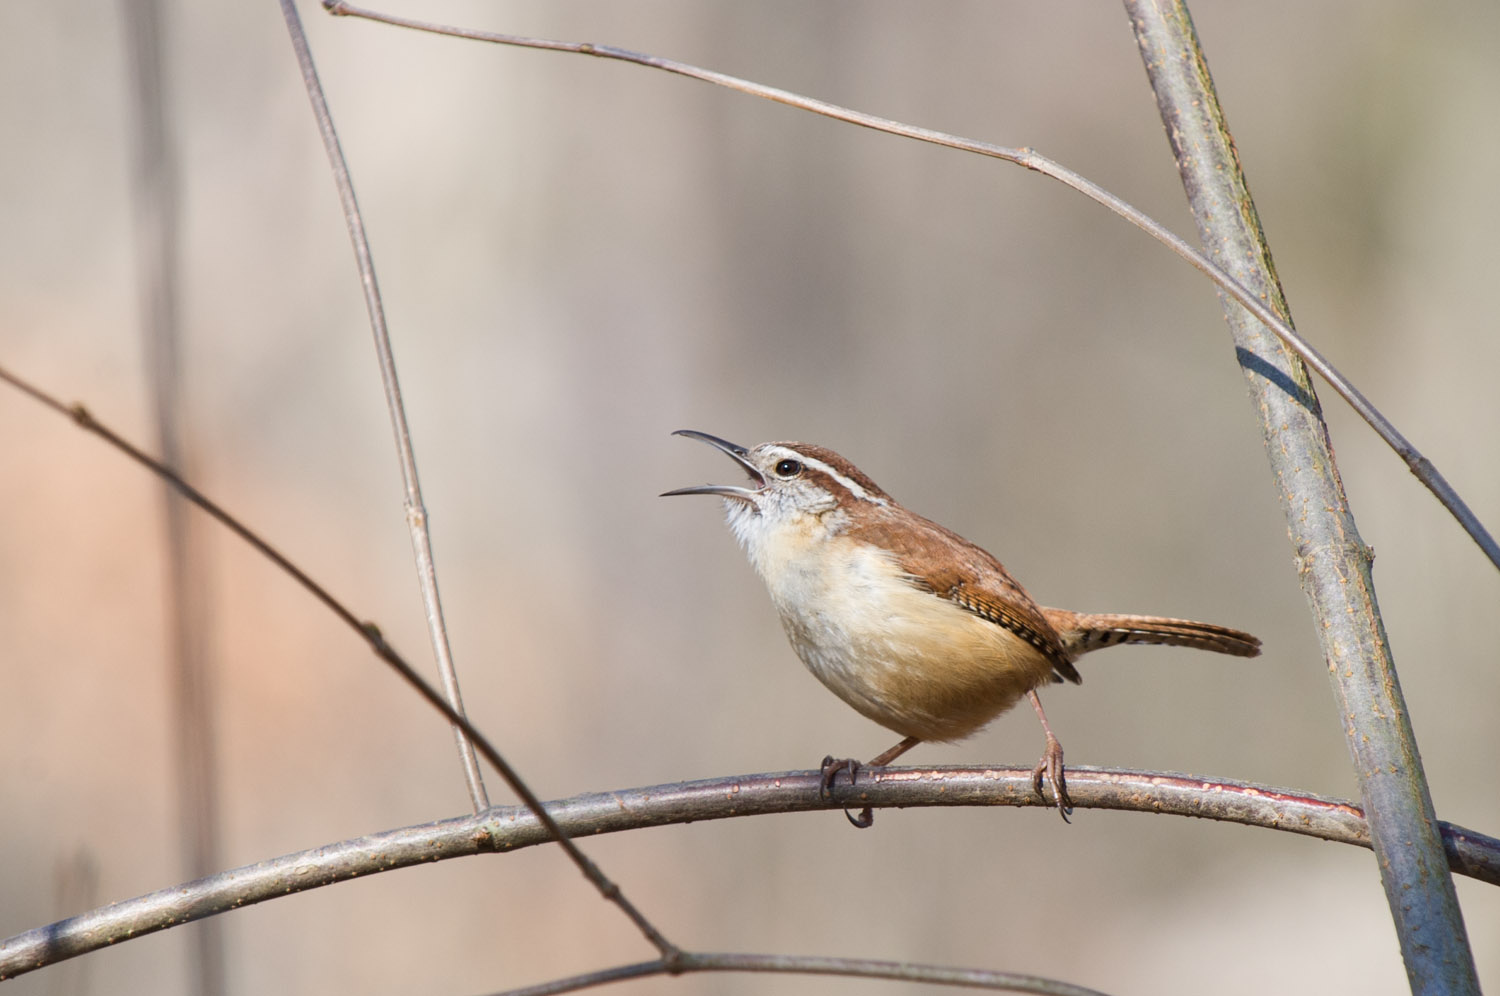 This tiny little Carolina Wren has one of the loudest voices of all the birds in the park.